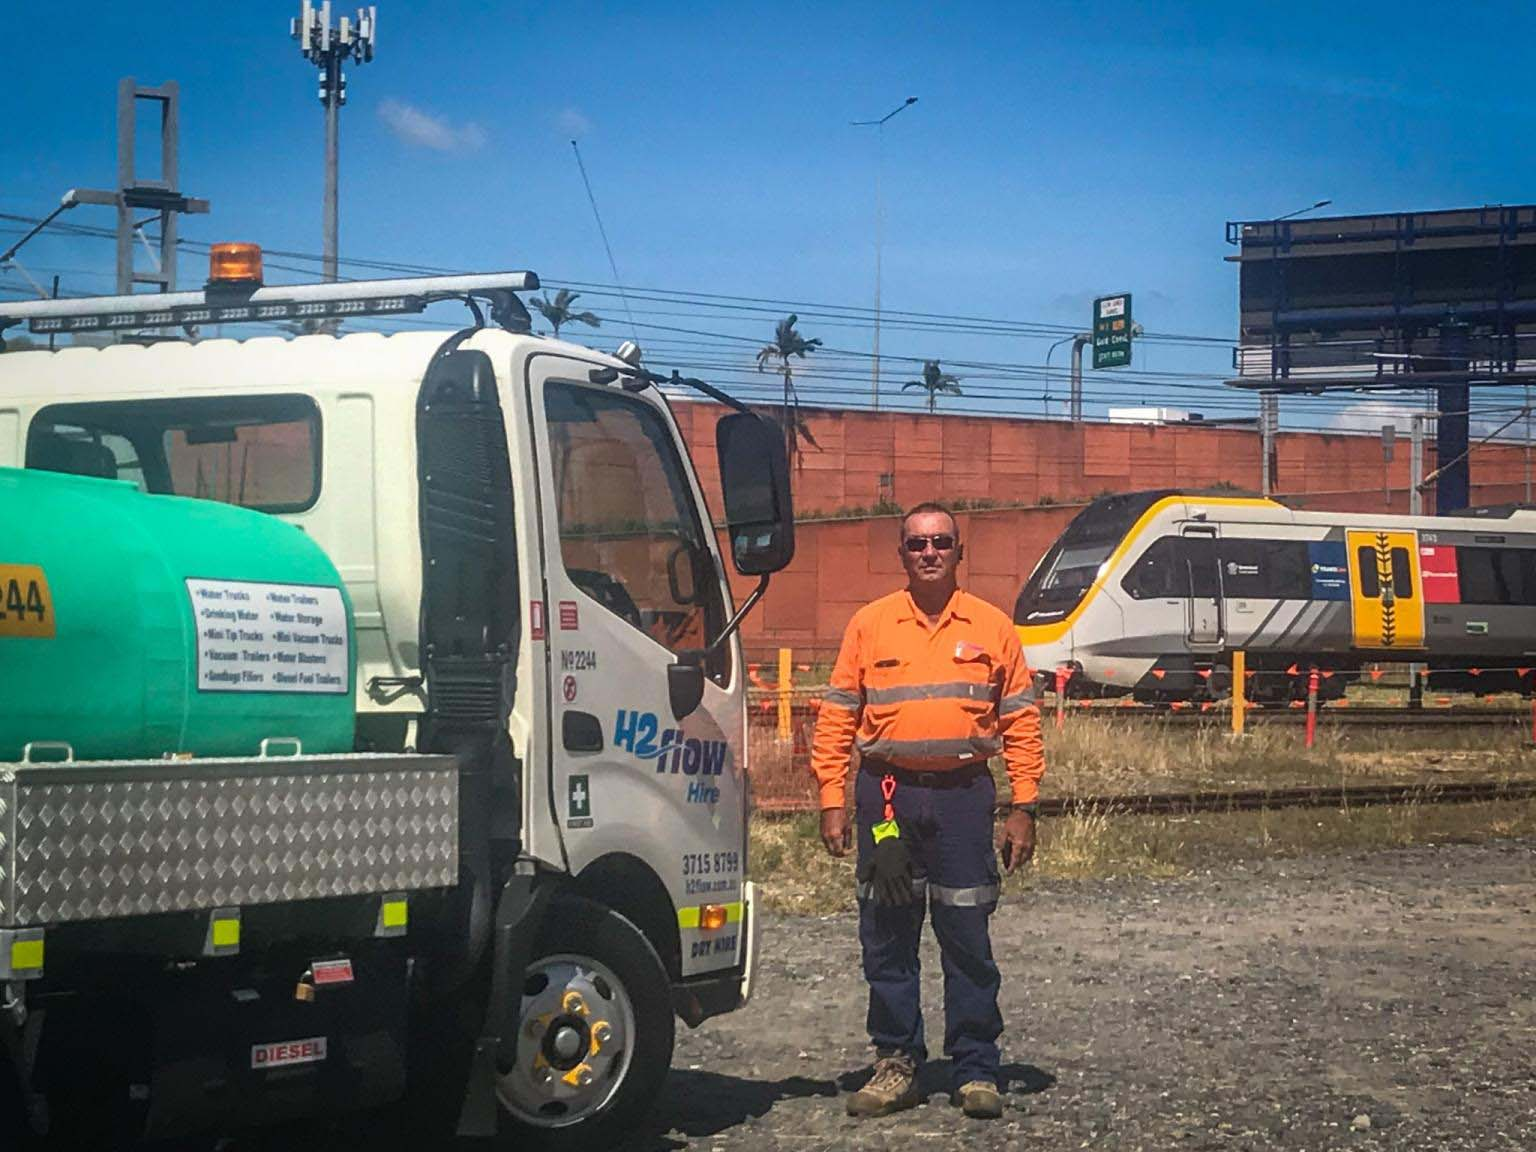 H2flow Hire General Manager Anthony Betts after delivering a 2000 litre dry hire water truck for Queensland Rail.